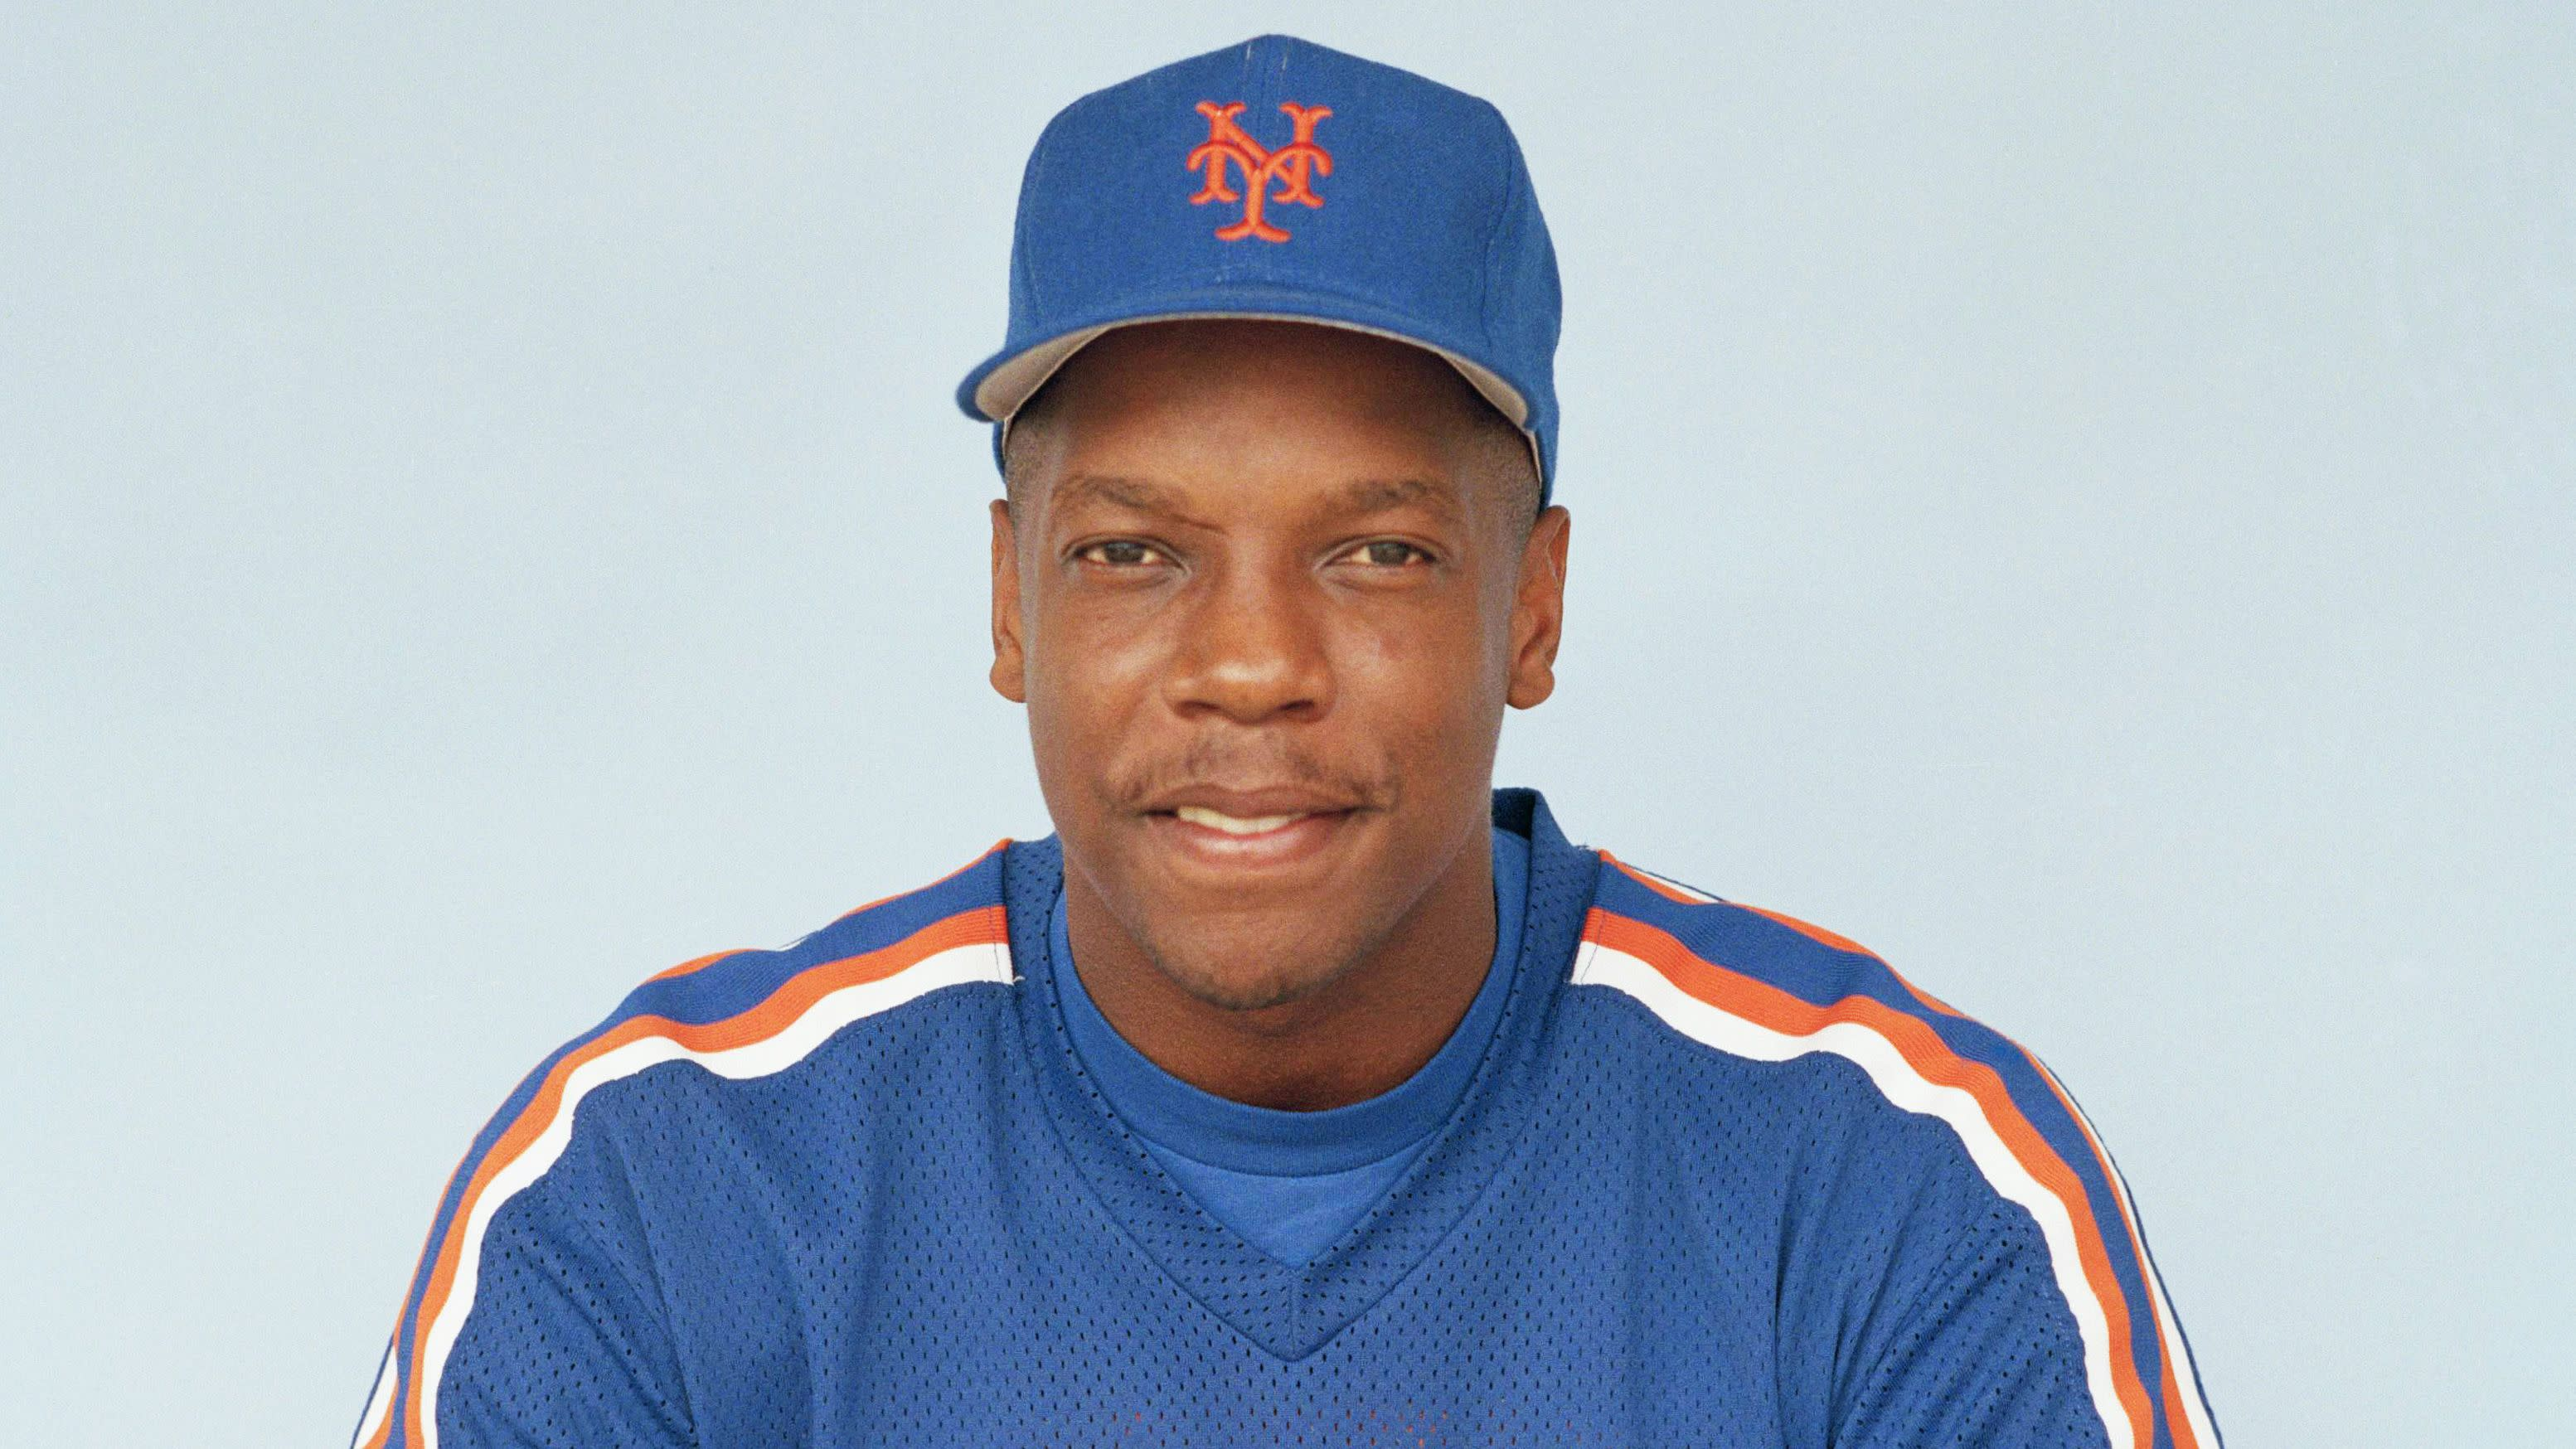 Report: Gooden arrested for cocaine possession